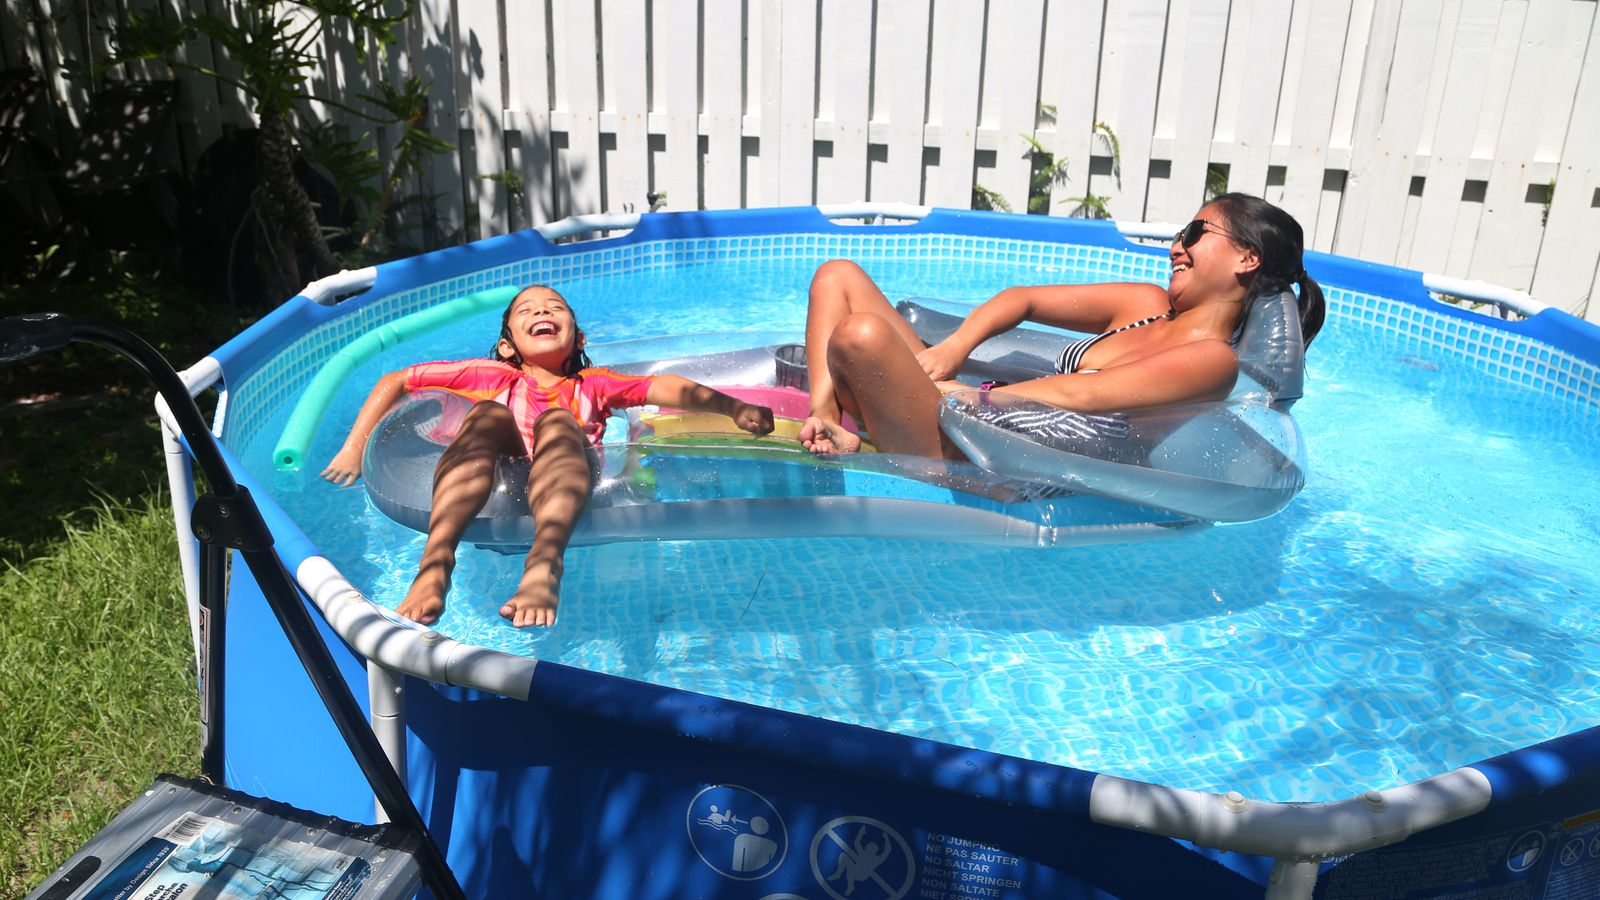 Desperate For A Swimming Pool In Hot Pandemic Times Tampa Bay Good Luck